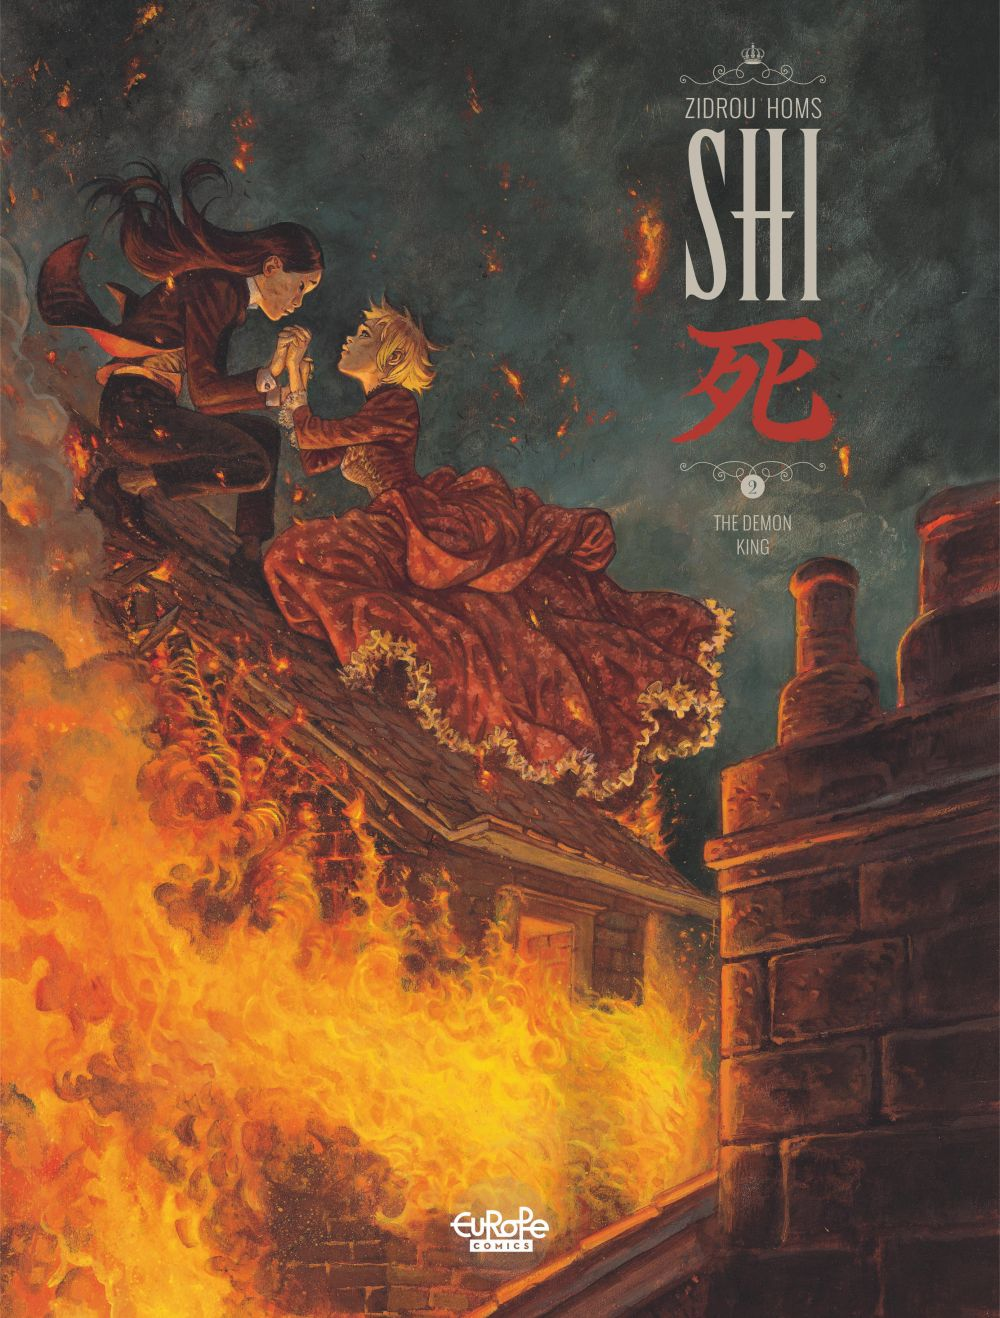 SHI - Volume 2 - The Demon King